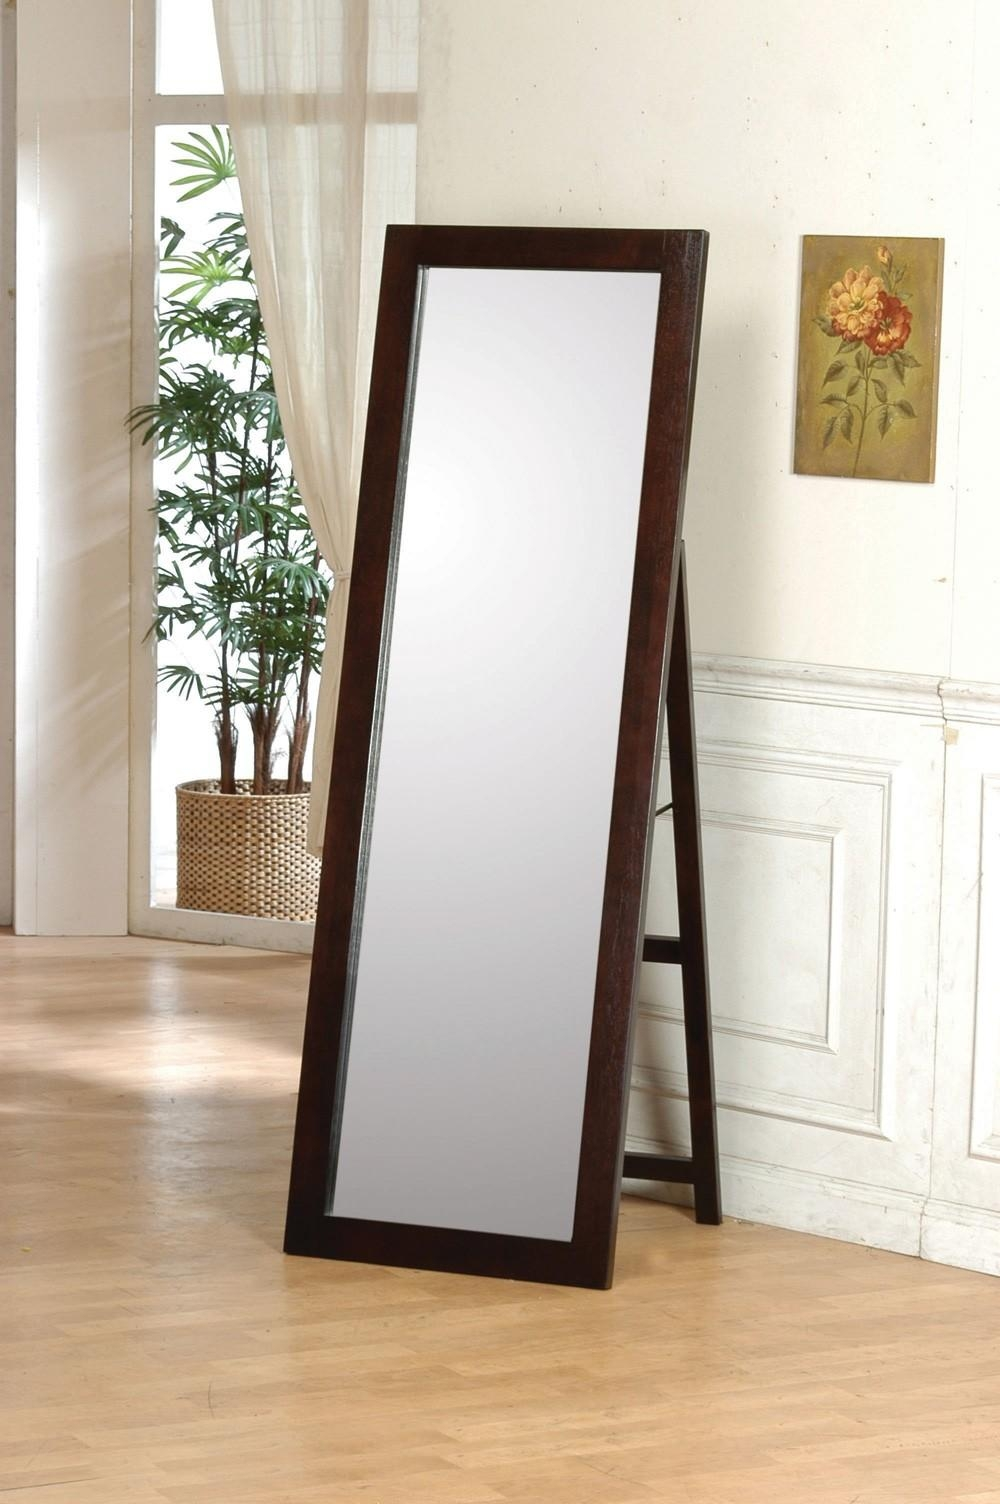 Things To Know When Buying Free Standing Mirrors Throughout Free Standing Bedroom Mirrors (Image 19 of 20)